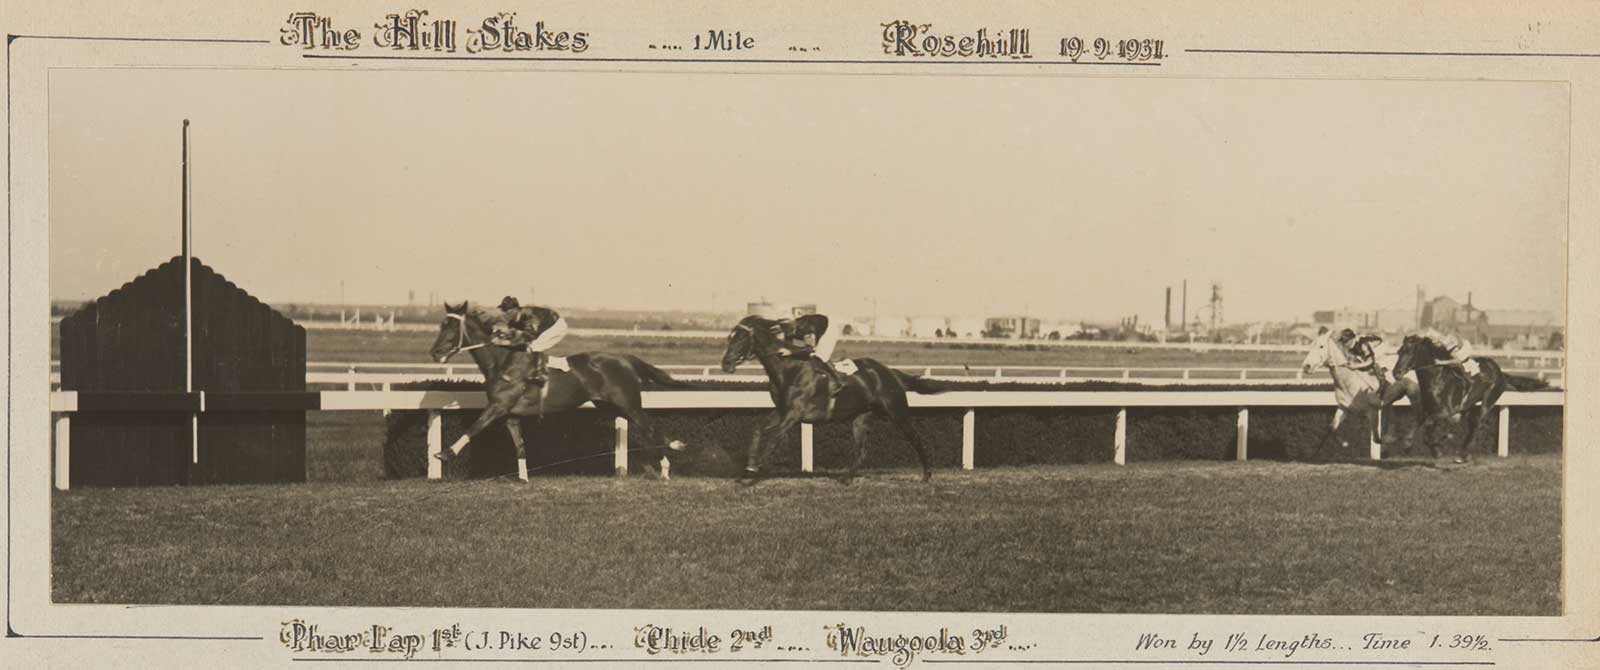 A black and white photo of Phar Lap winning the Hill Stakes, 1931. - click to view larger image